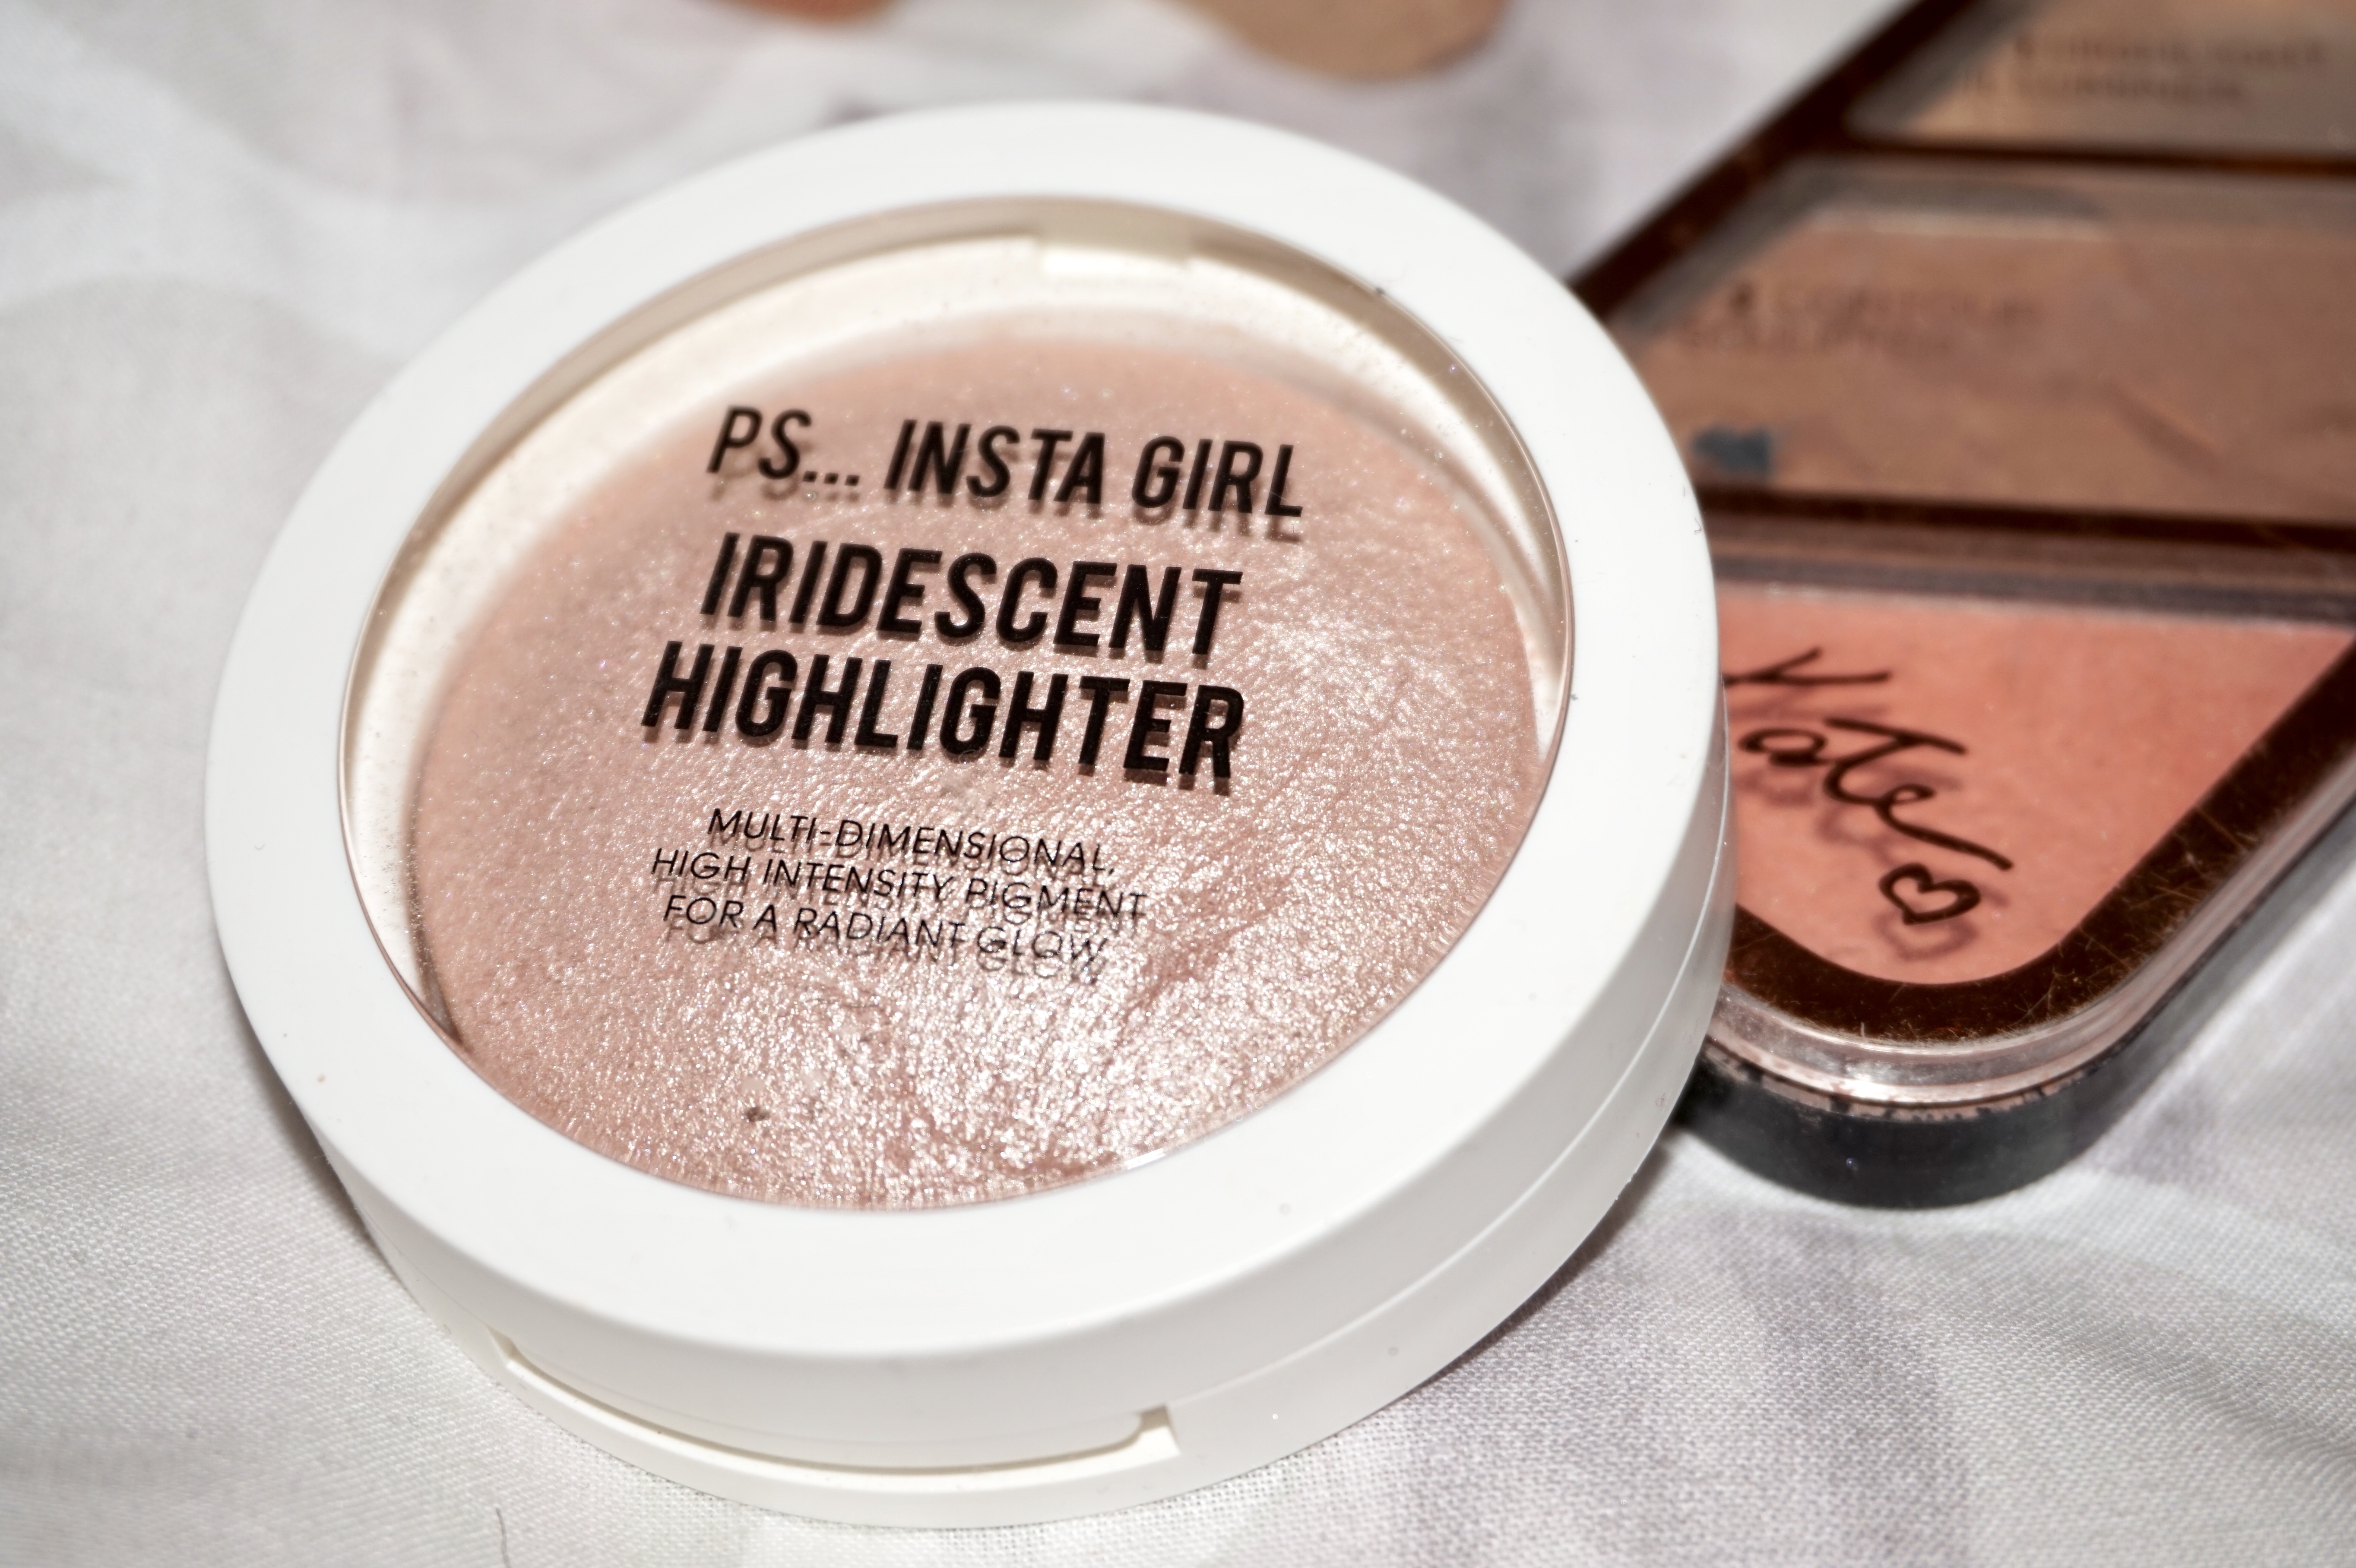 splash of glam make-up highlighter and blush